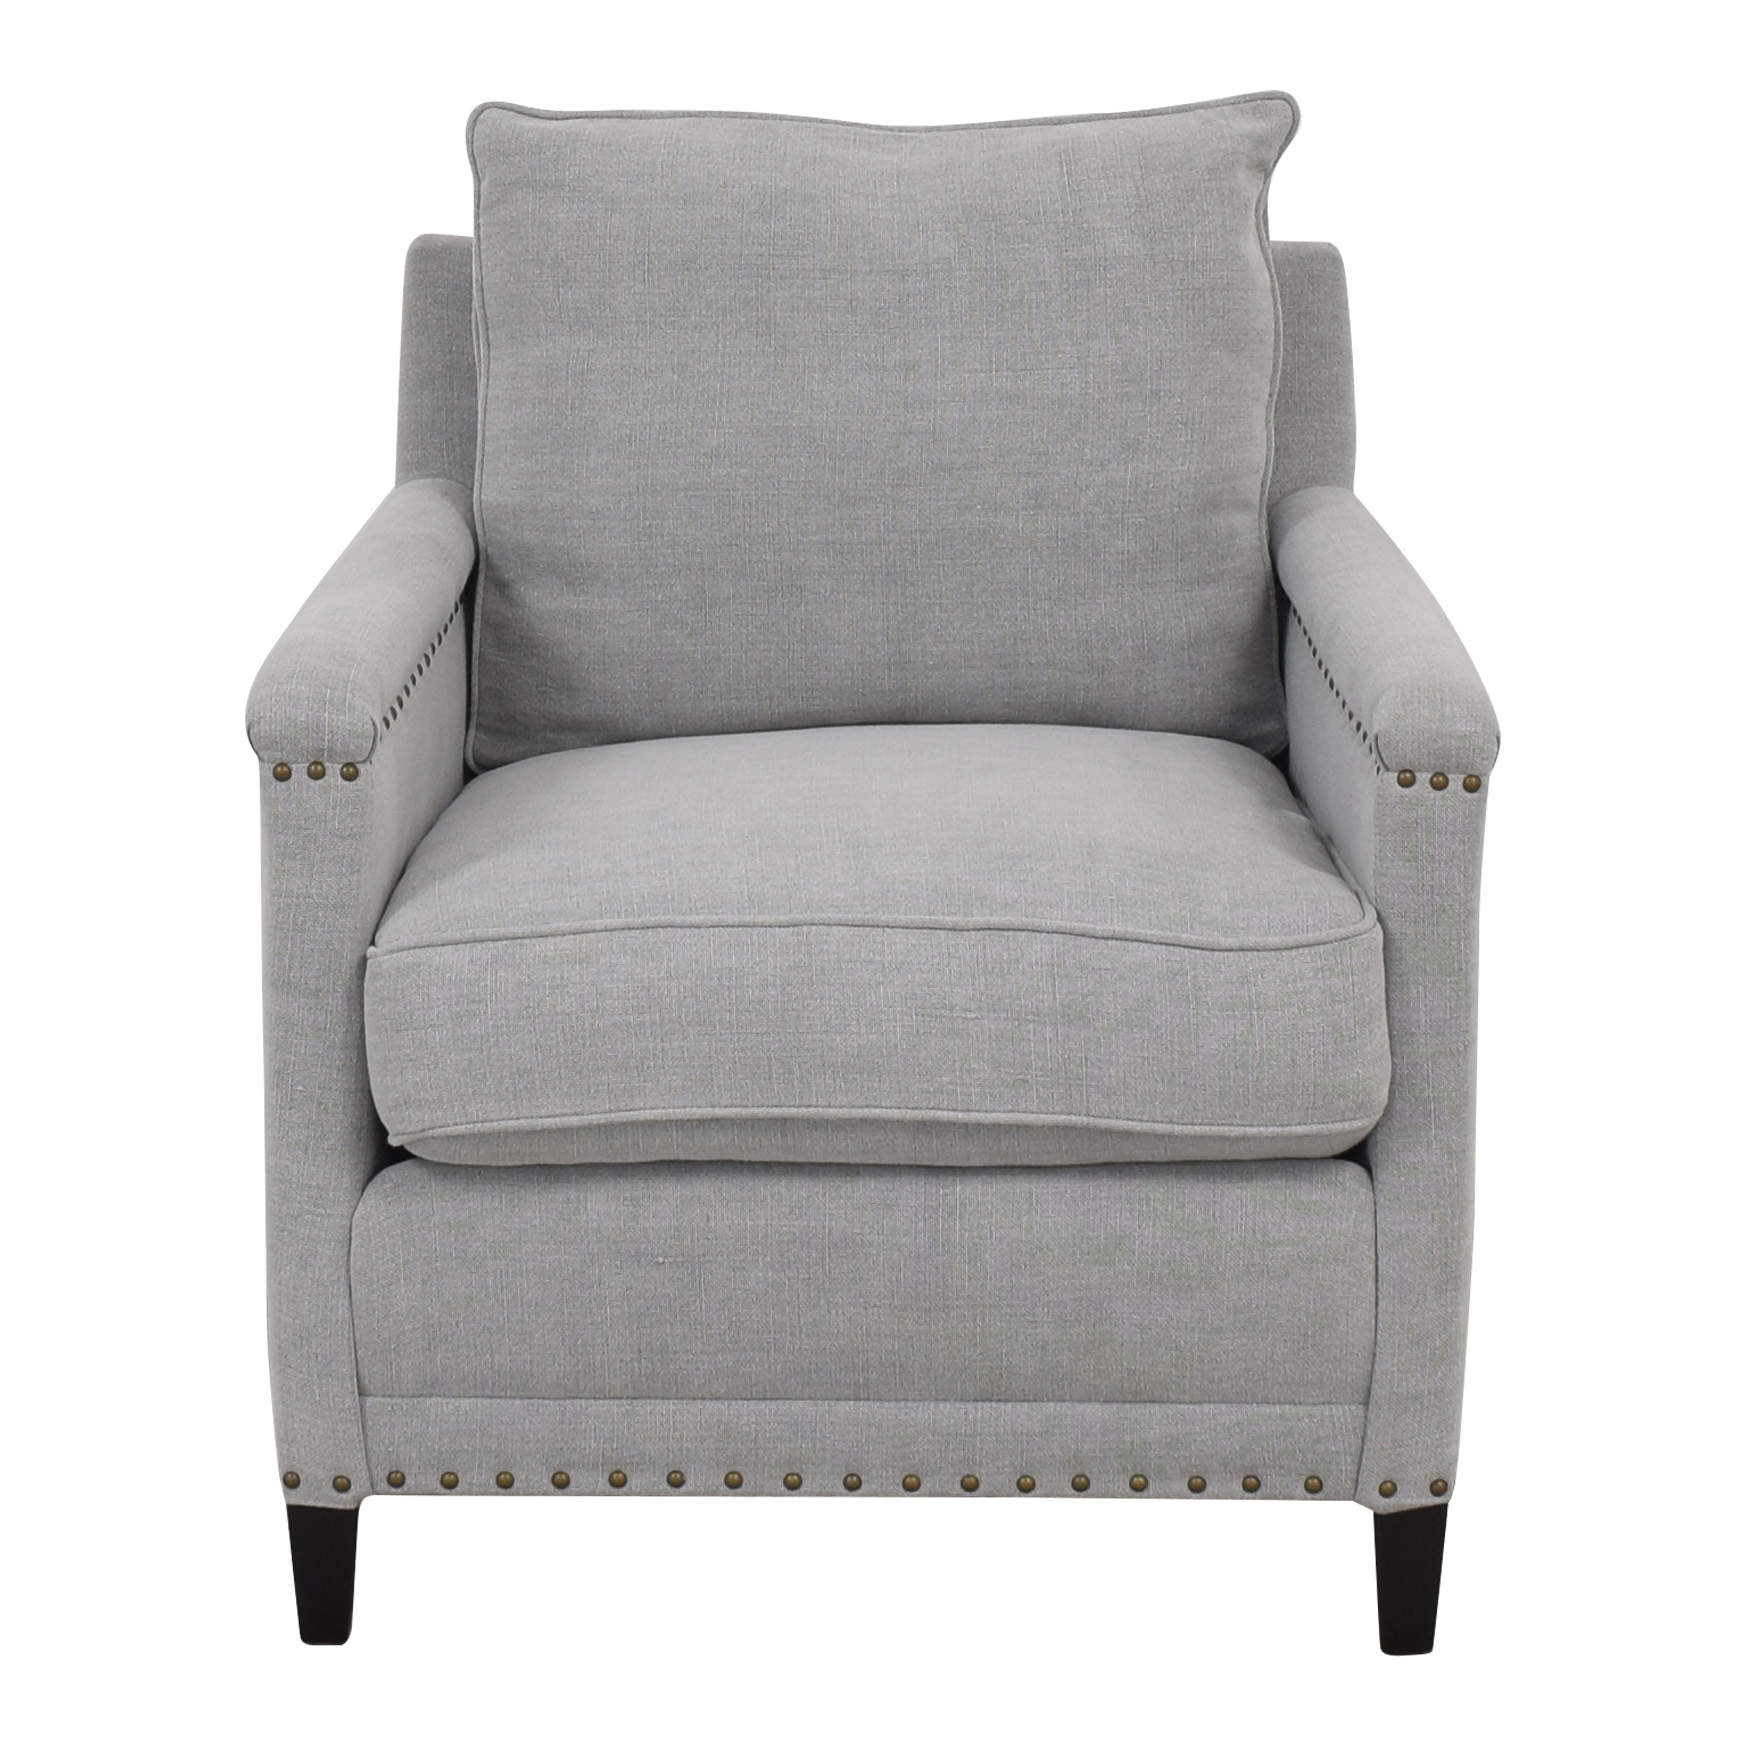 Williams Sonoma Williams Sononma Addison Chair for sale